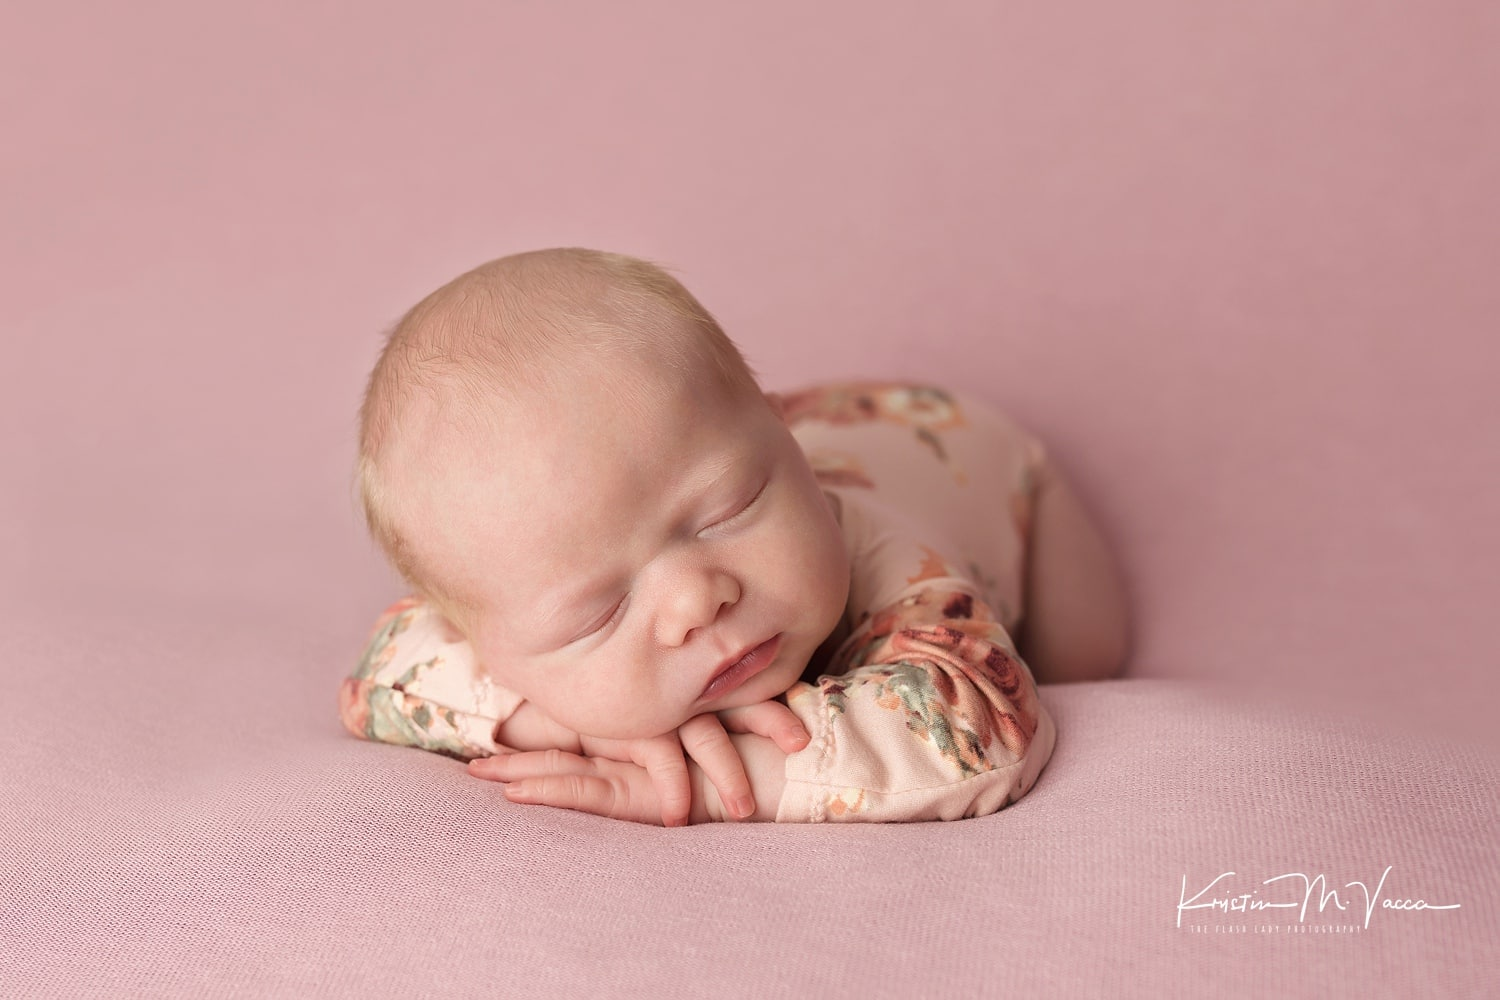 Jacqueline's professional newborn photography session by Connecticut photographer The Flash Lady Photography